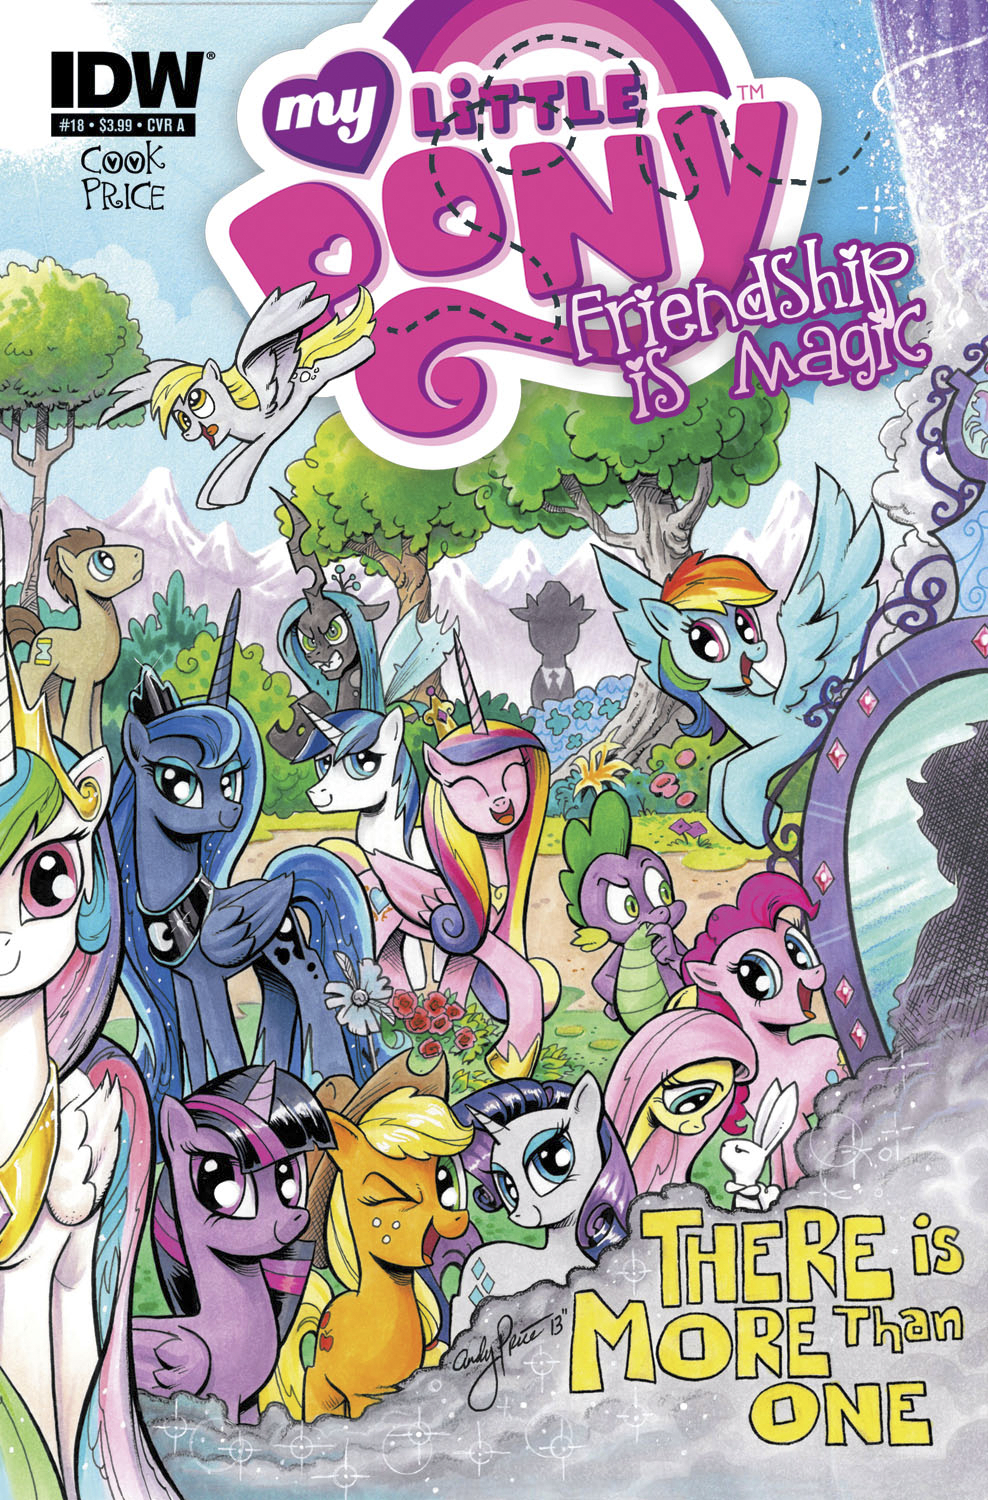 MY LITTLE PONY FRIENDSHIP IS MAGIC #18